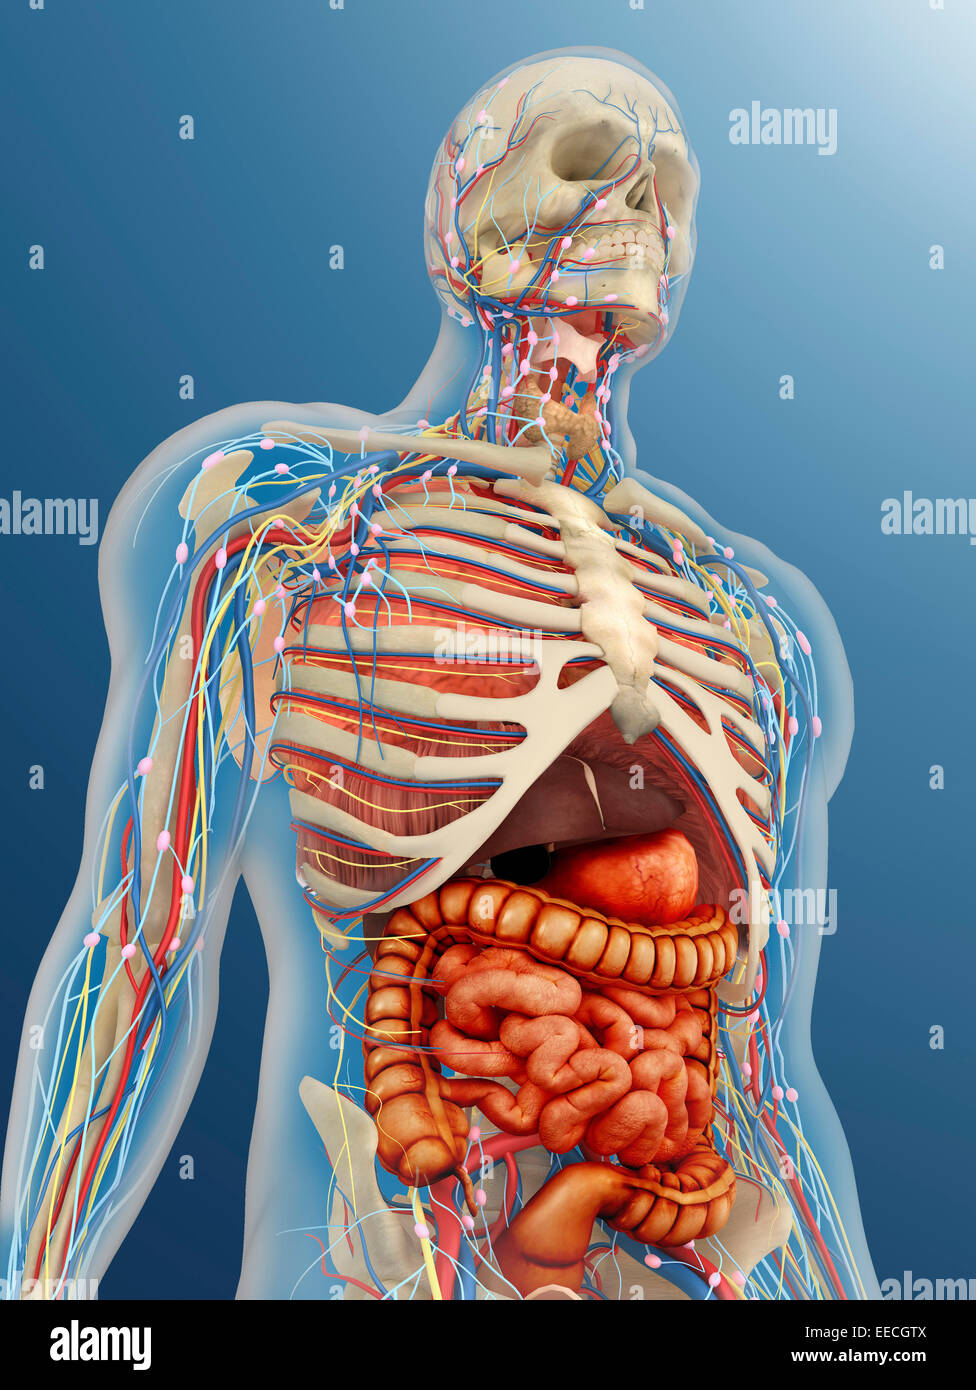 Picture of internal organs in human body